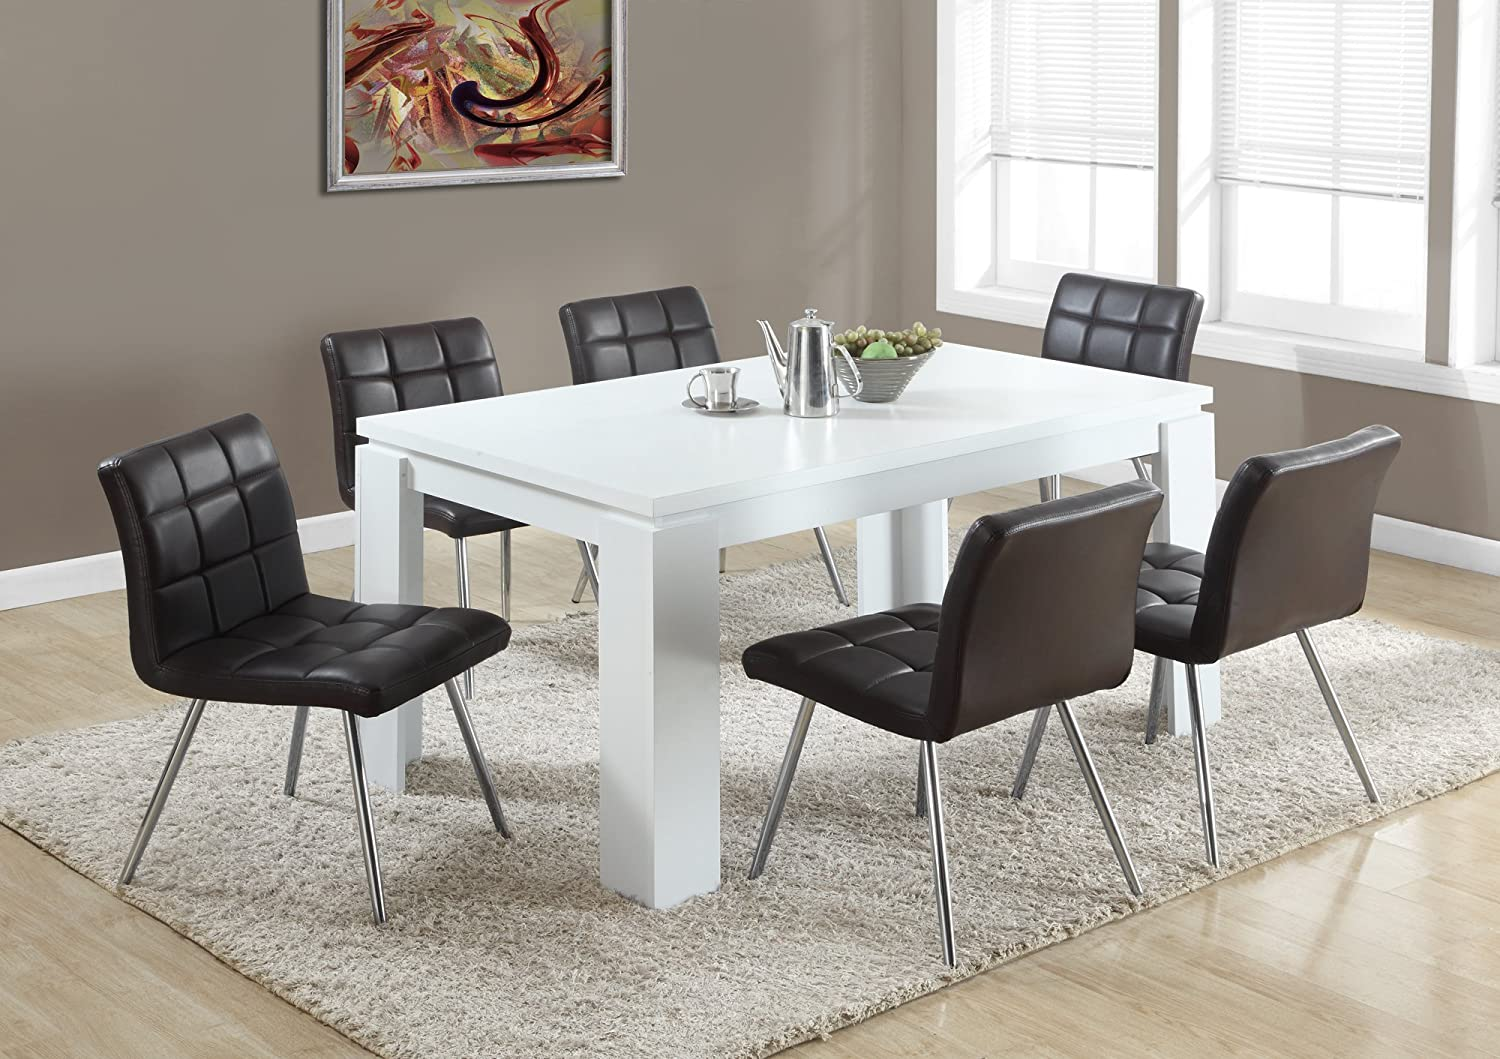 Dining Table Monarch Specialties 60L White Hollow-Core